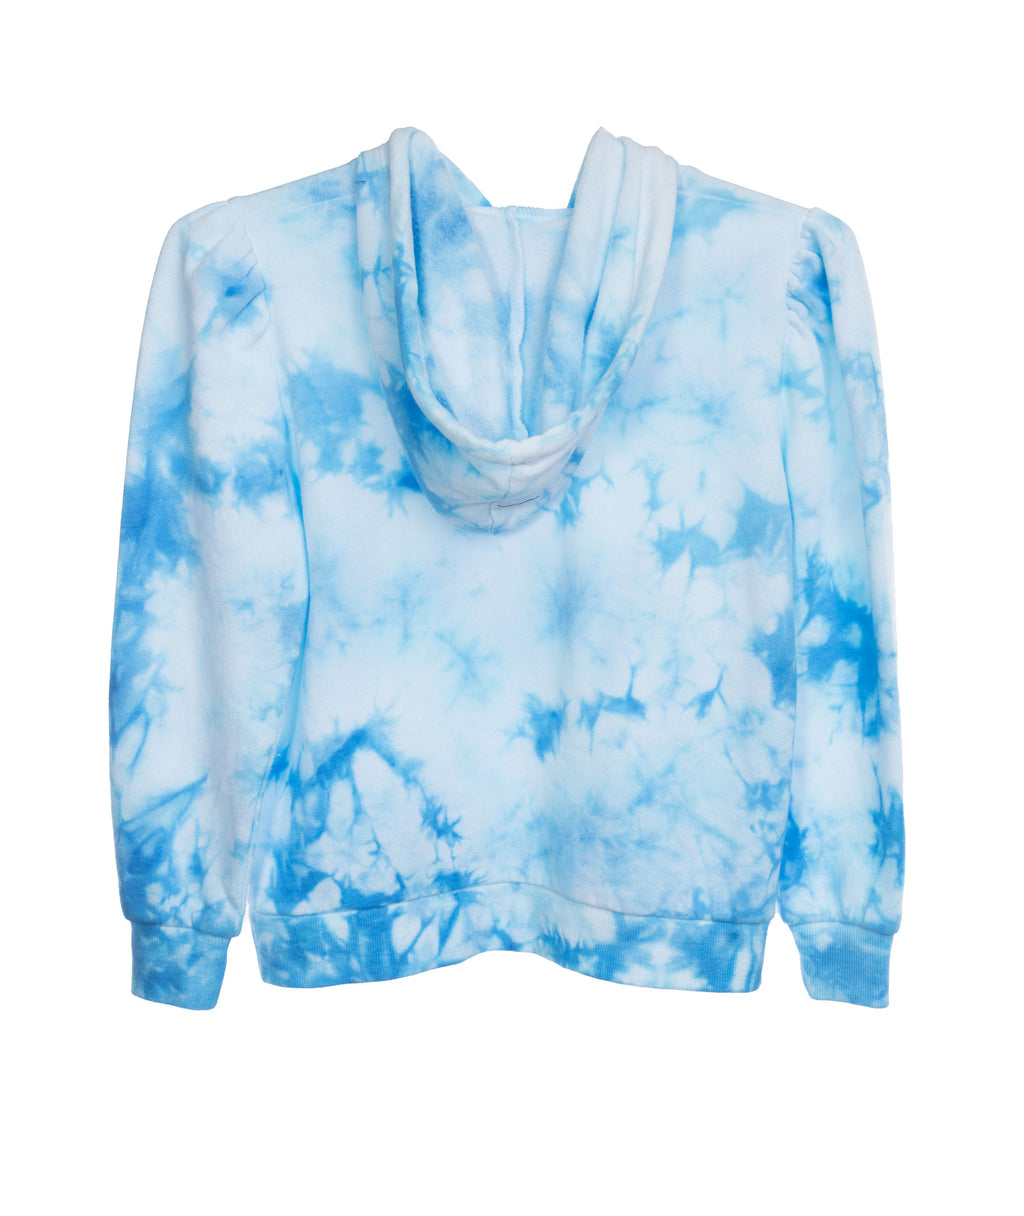 Katie J NYC Girls Frenchie Blue and White Tie Dye Hoodie